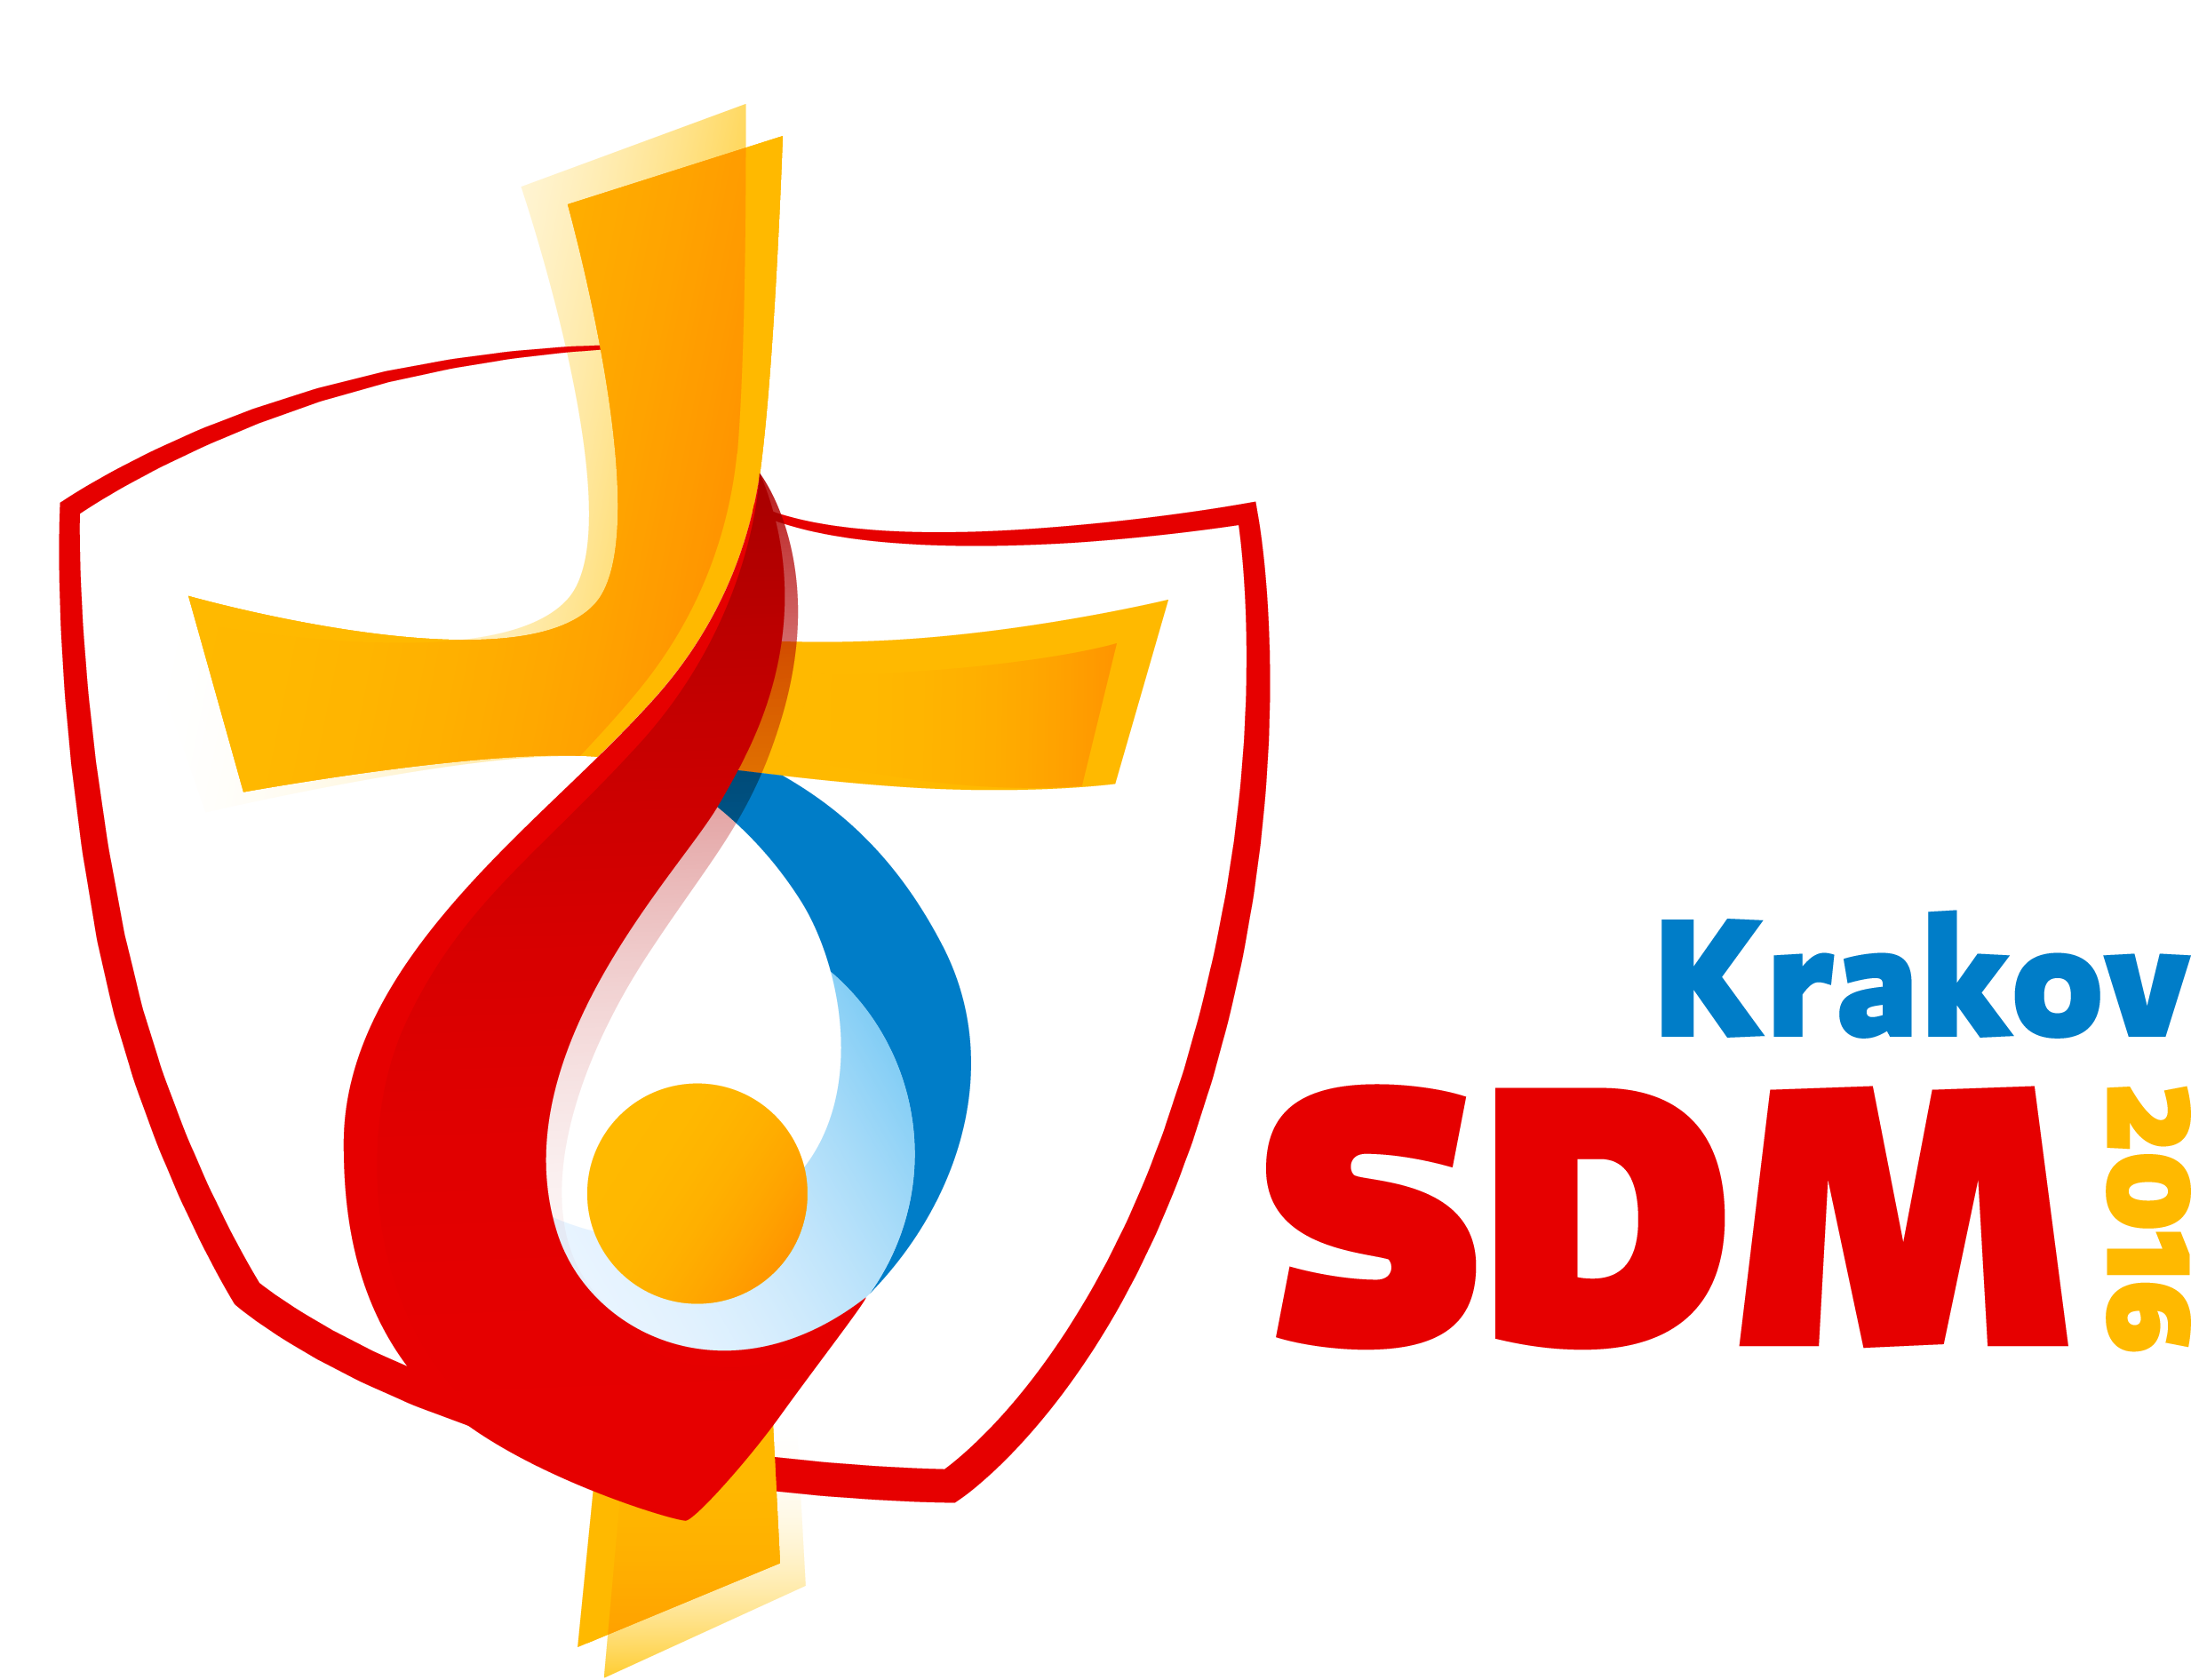 Krakov2016_logo_transparent